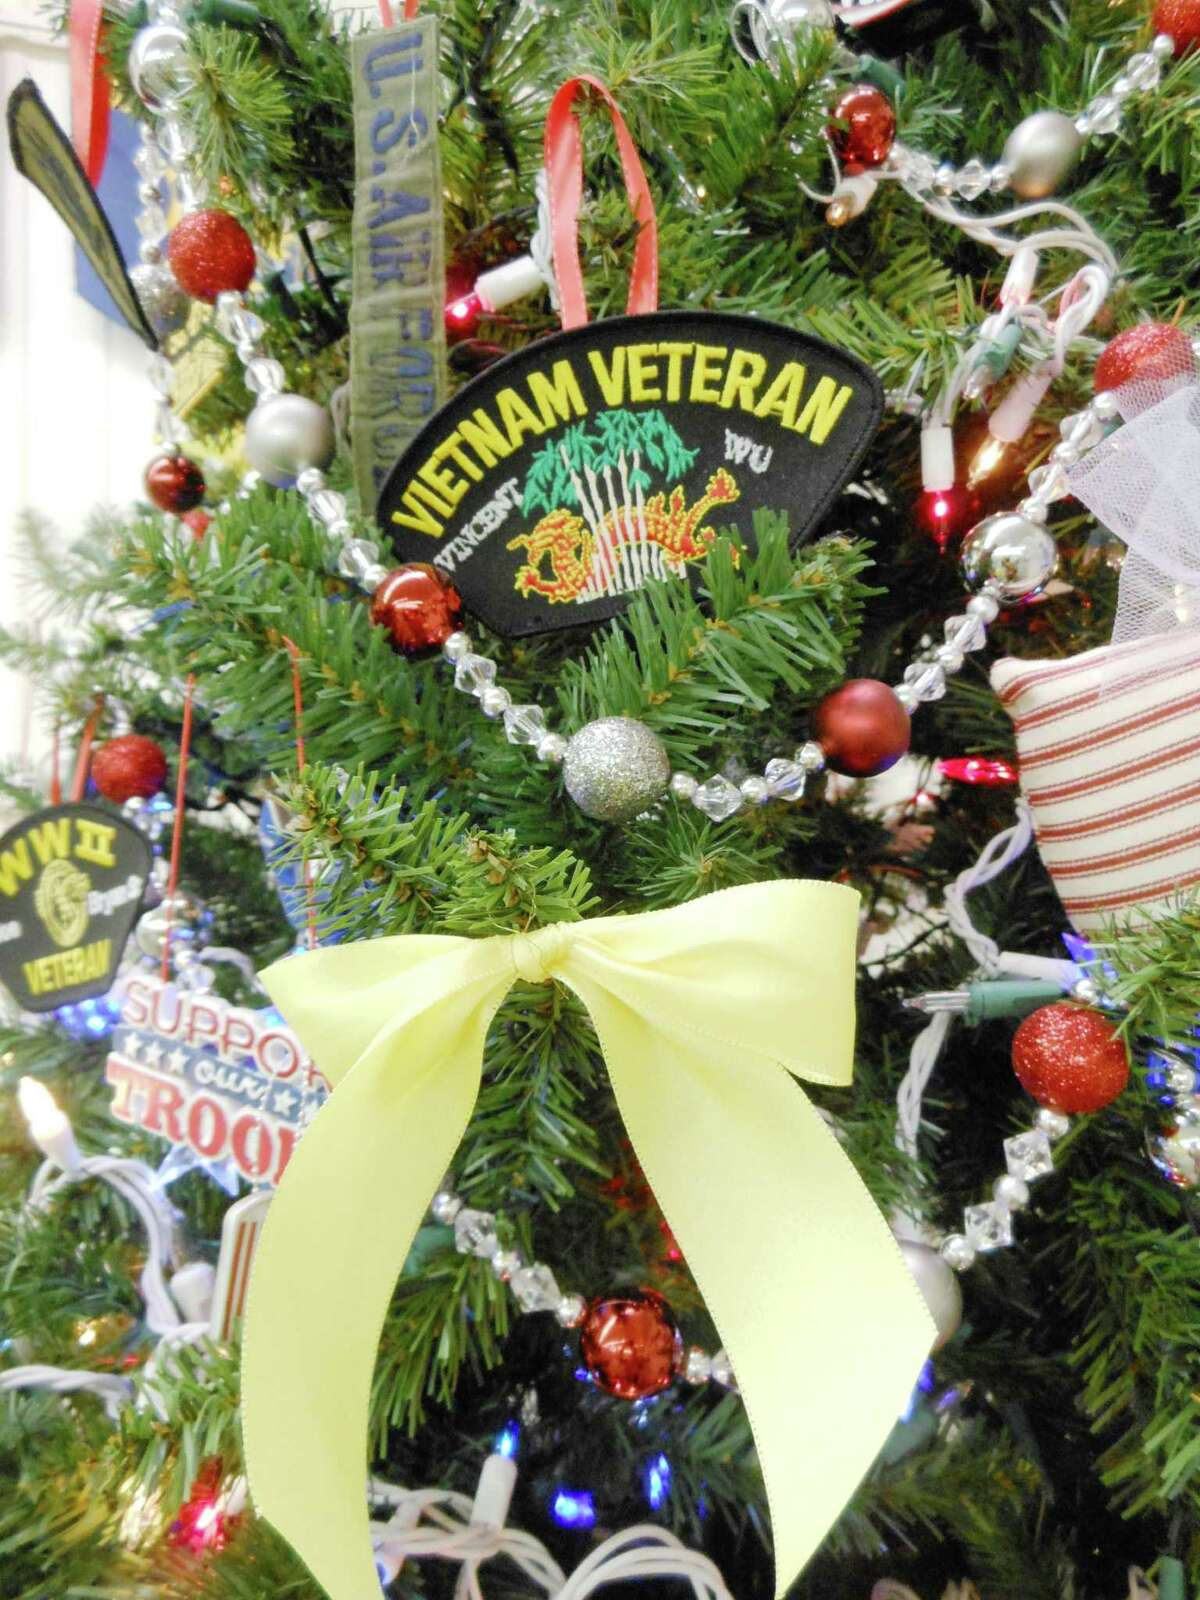 Above the yellow ribbon is a patch that belonged to Vietnam veteran Vincent Wu, a member of Post 3903 who died last year. His wife, JoAnn, is an auxiliary member. Above the yellow ribbon is a patch that belonged to Vietnam veteran Vincent Wu, a member of Post 3903 who died last year. His wife, JoAnn, is an auxiliary member.